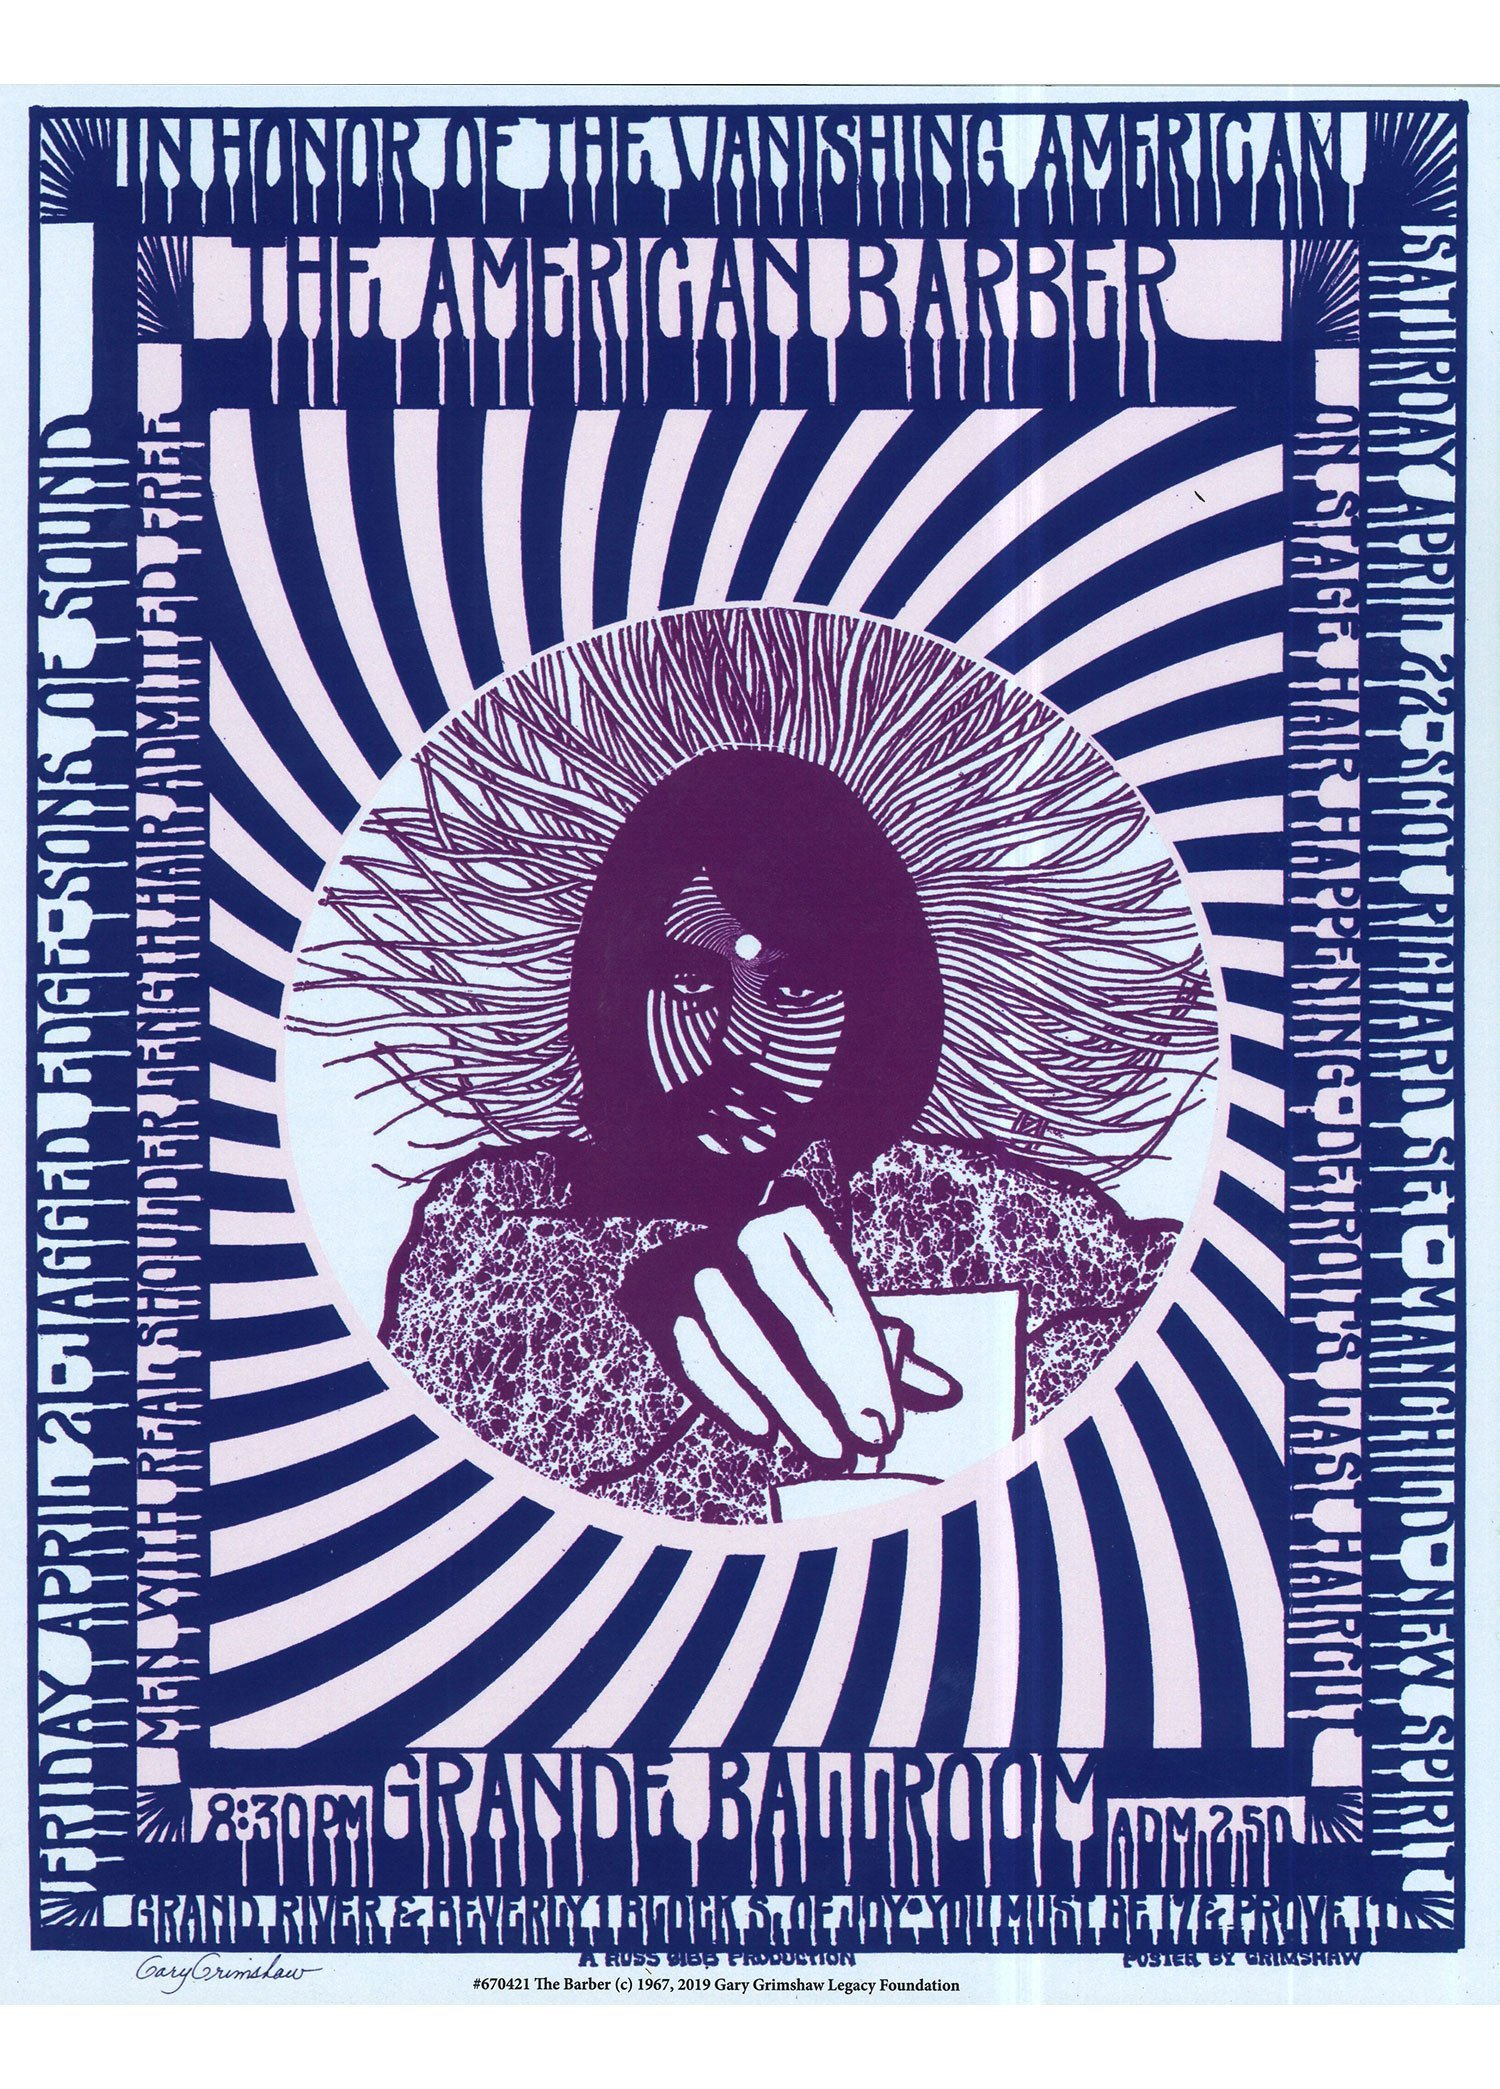 Gary Grimshaw (1946-2014) was a graphic artist active in Detroit and San Francisco who specialized in designing rock concert posters for bands like MC5, The Yardbirds and Cream.  Many of Gary's best-known works were produced for the iconic Detroit concert venue  Grande Ballroom , such as the 'John Sinclair Freedom Rally'. In the late 1970's he worked the the legendary rock magazine  Creem  as associate art director. He is known for his innovative psychedelic lettering techniques.